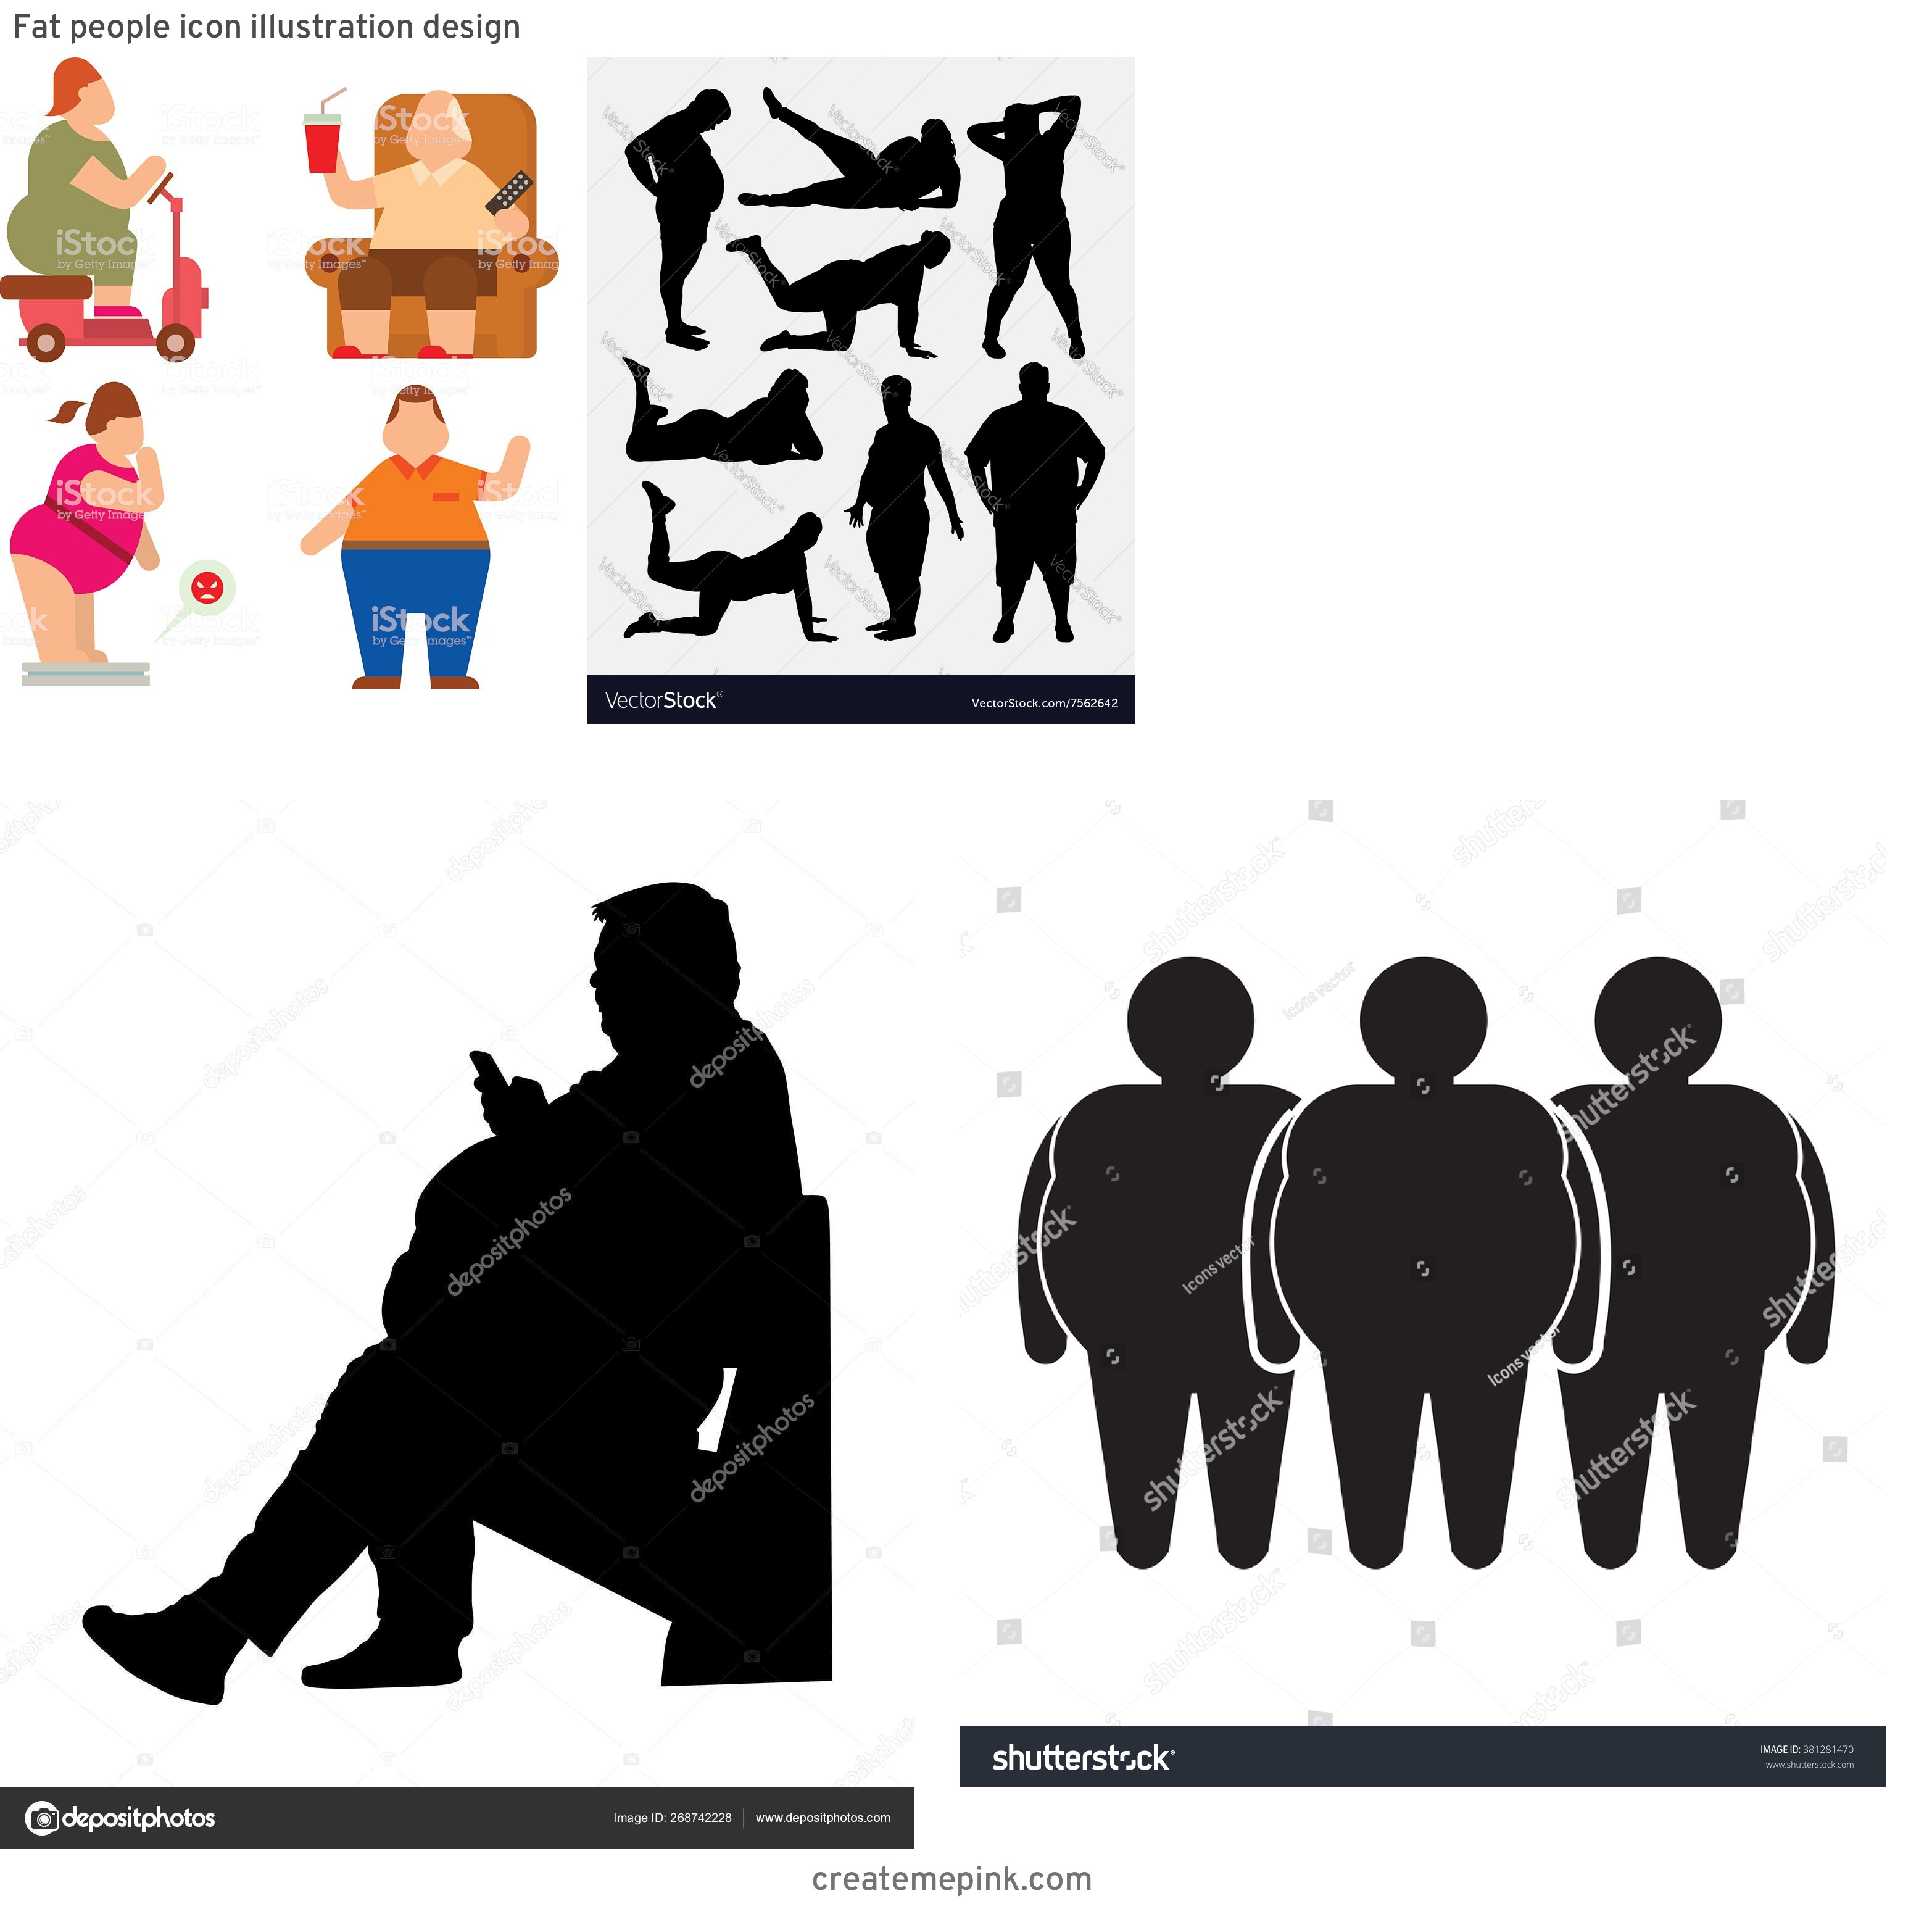 People Silhouette Vector Illustration Of Fat: Fat People Icon Illustration Design